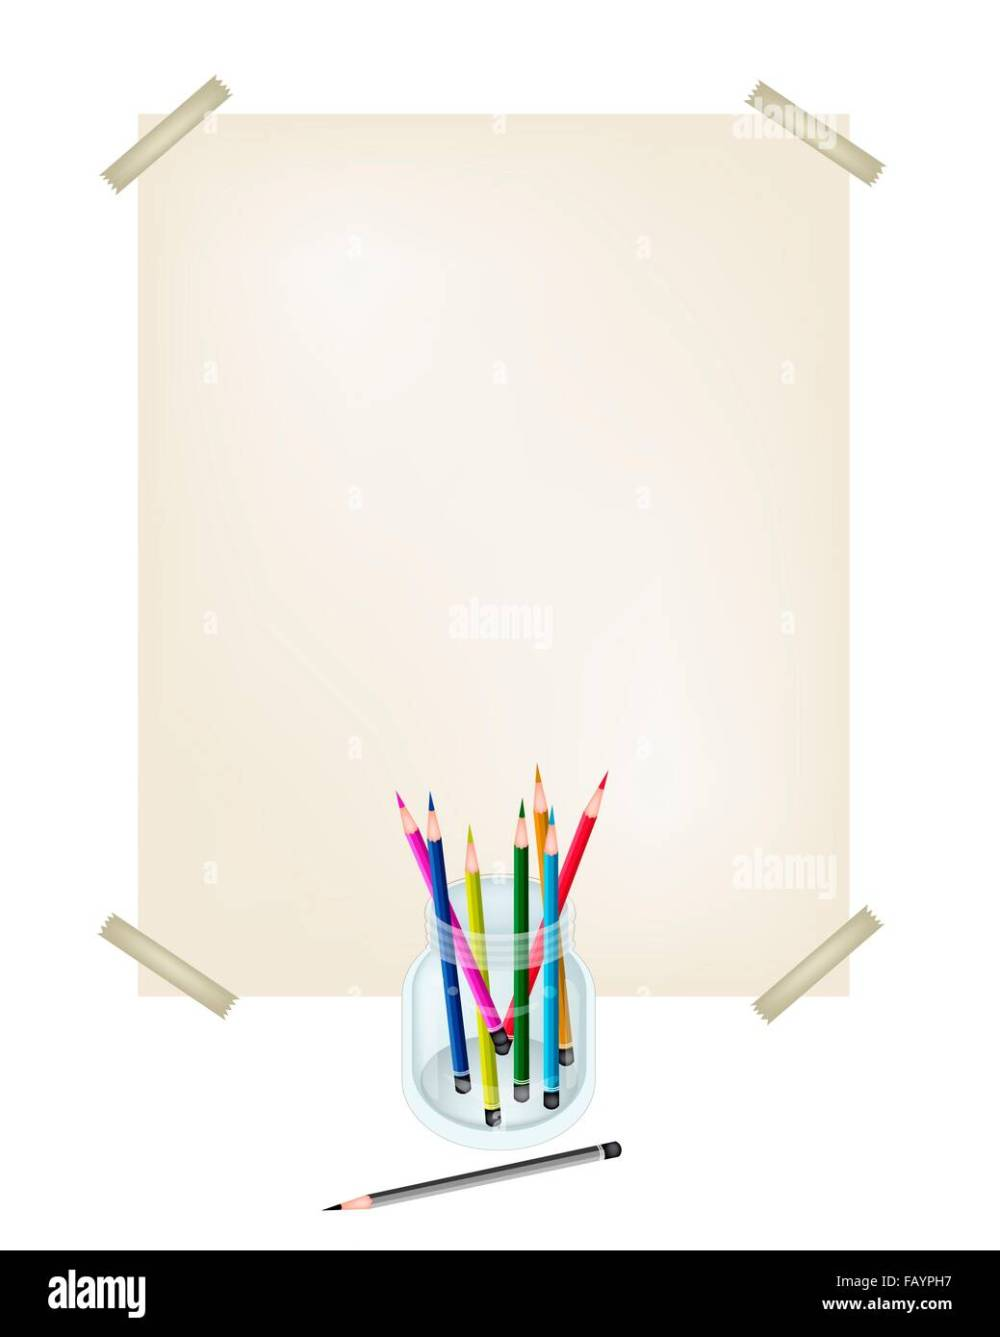 medium resolution of art supply an illustration collection of colorful colored pencil crayons in glass jar with a drawing paper for sketch